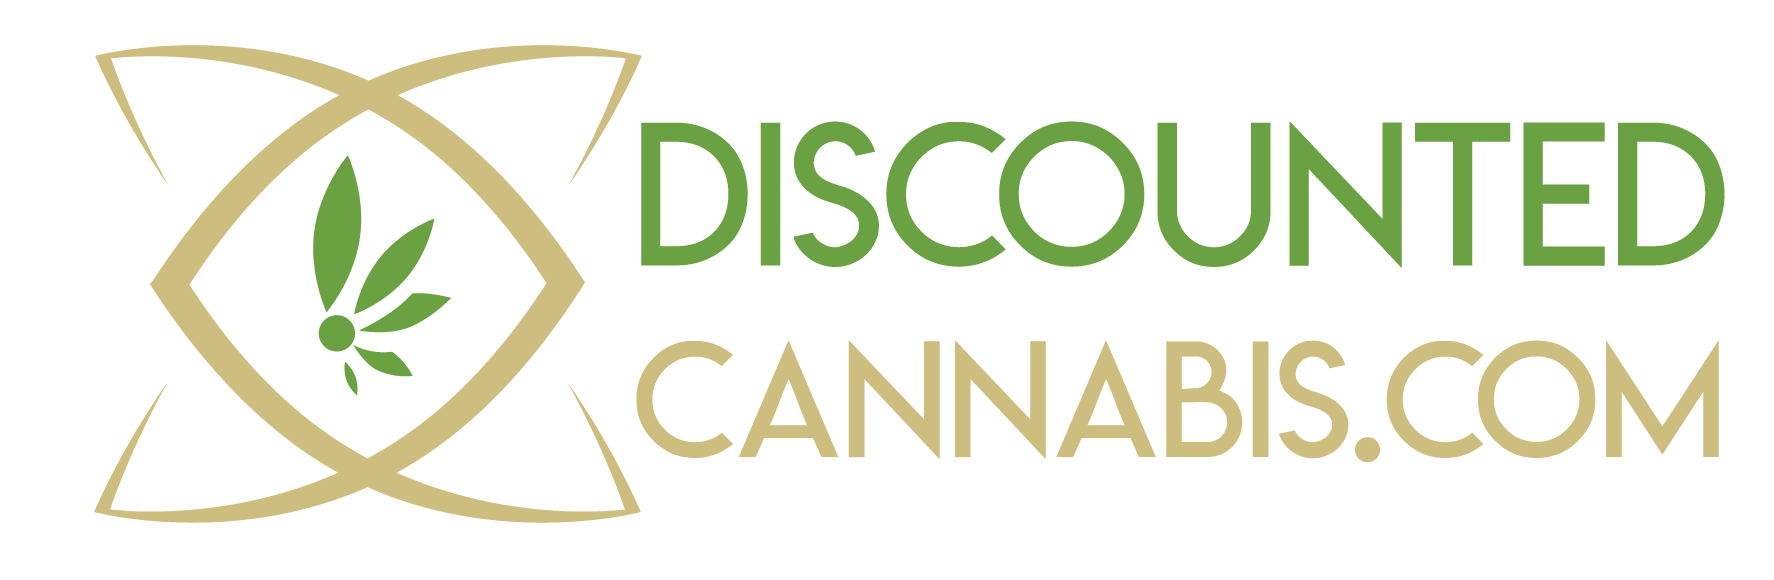 Discounted Cannabis